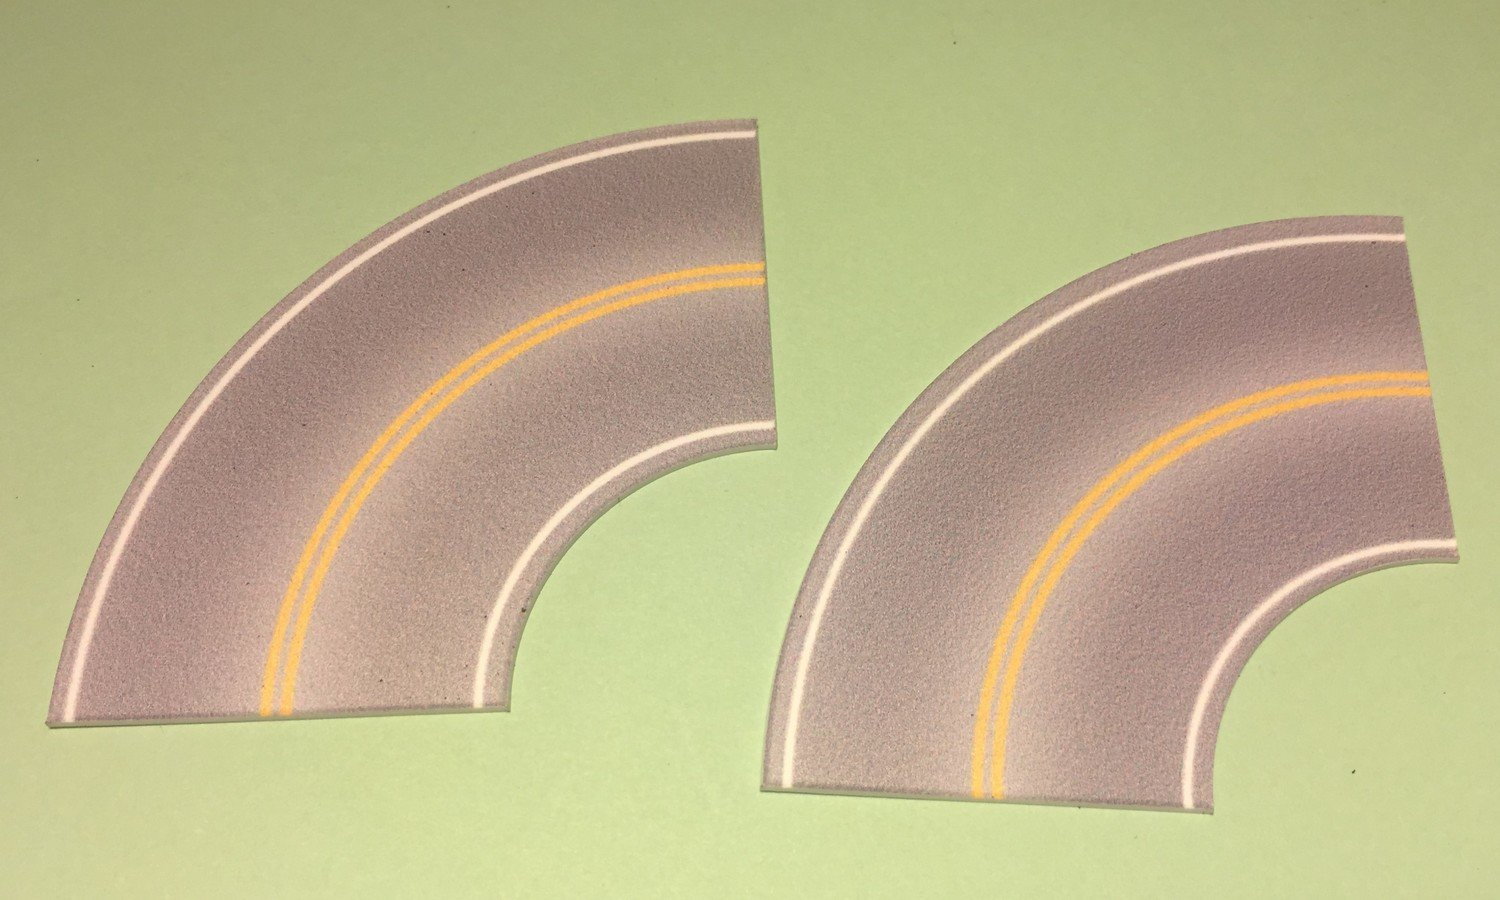 Easy Streets O - Aged Asphalt-Tight Curve No Passing